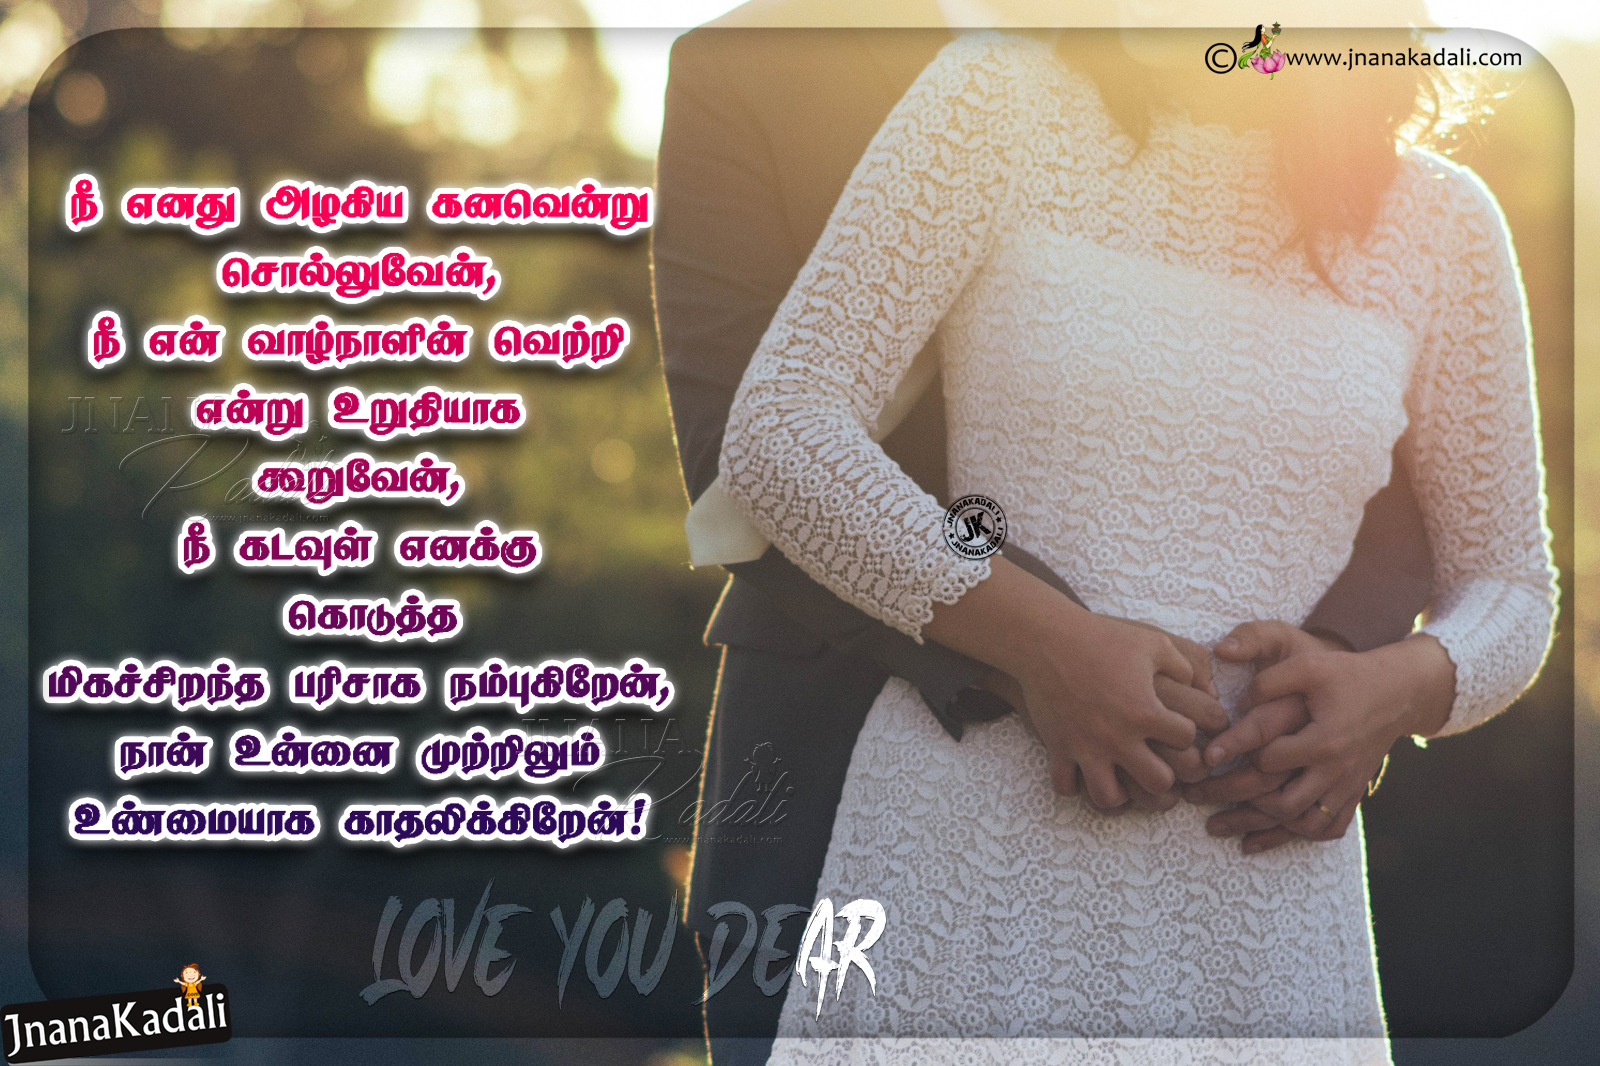 Romantic Love Quotes In Telugu Love Couple Hd Wallpapers With Love Tamil Poetry Brainysms